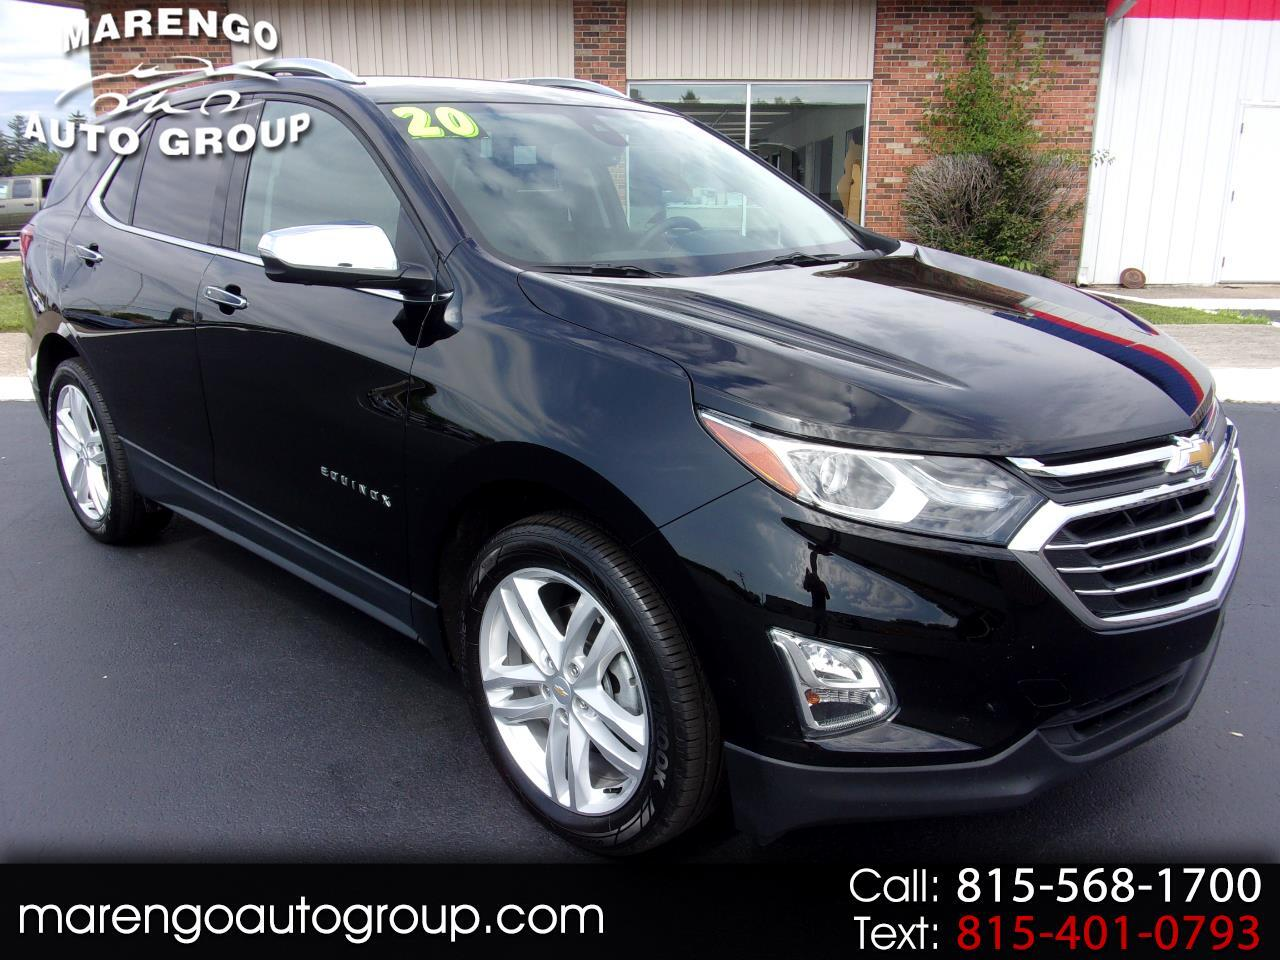 used 2020 Chevrolet Equinox car, priced at $28,996